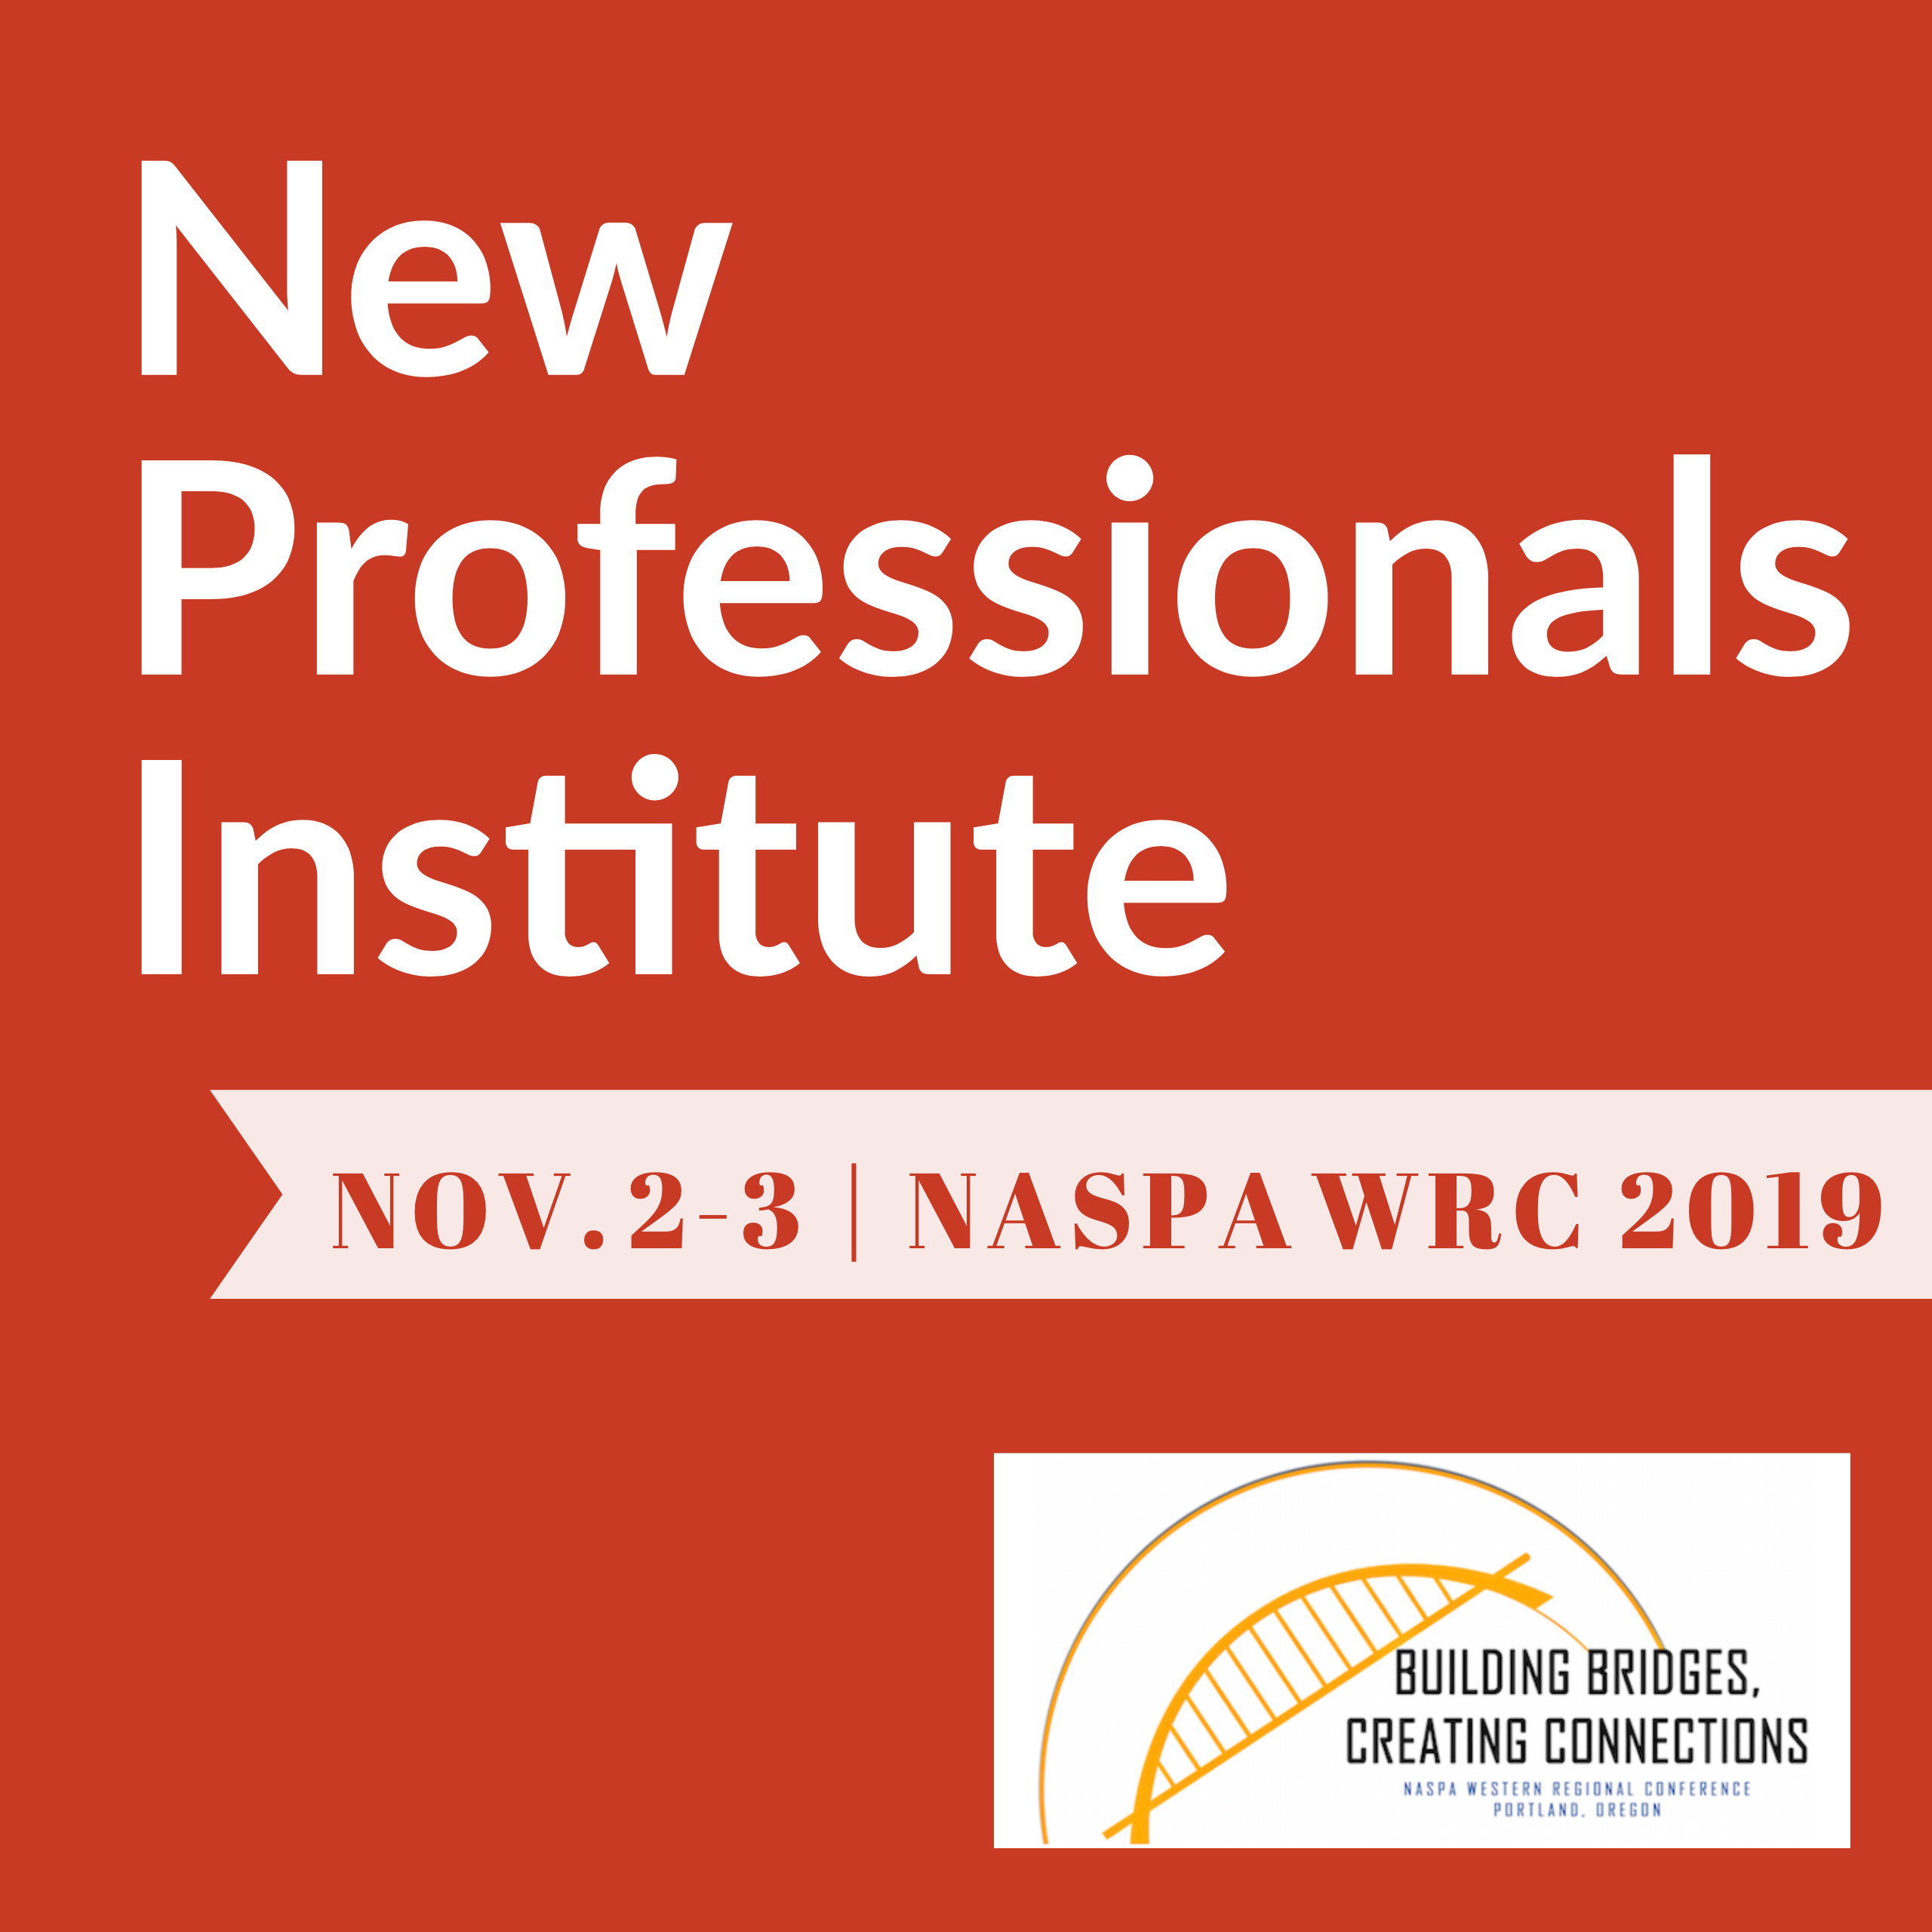 New Professionals Institute